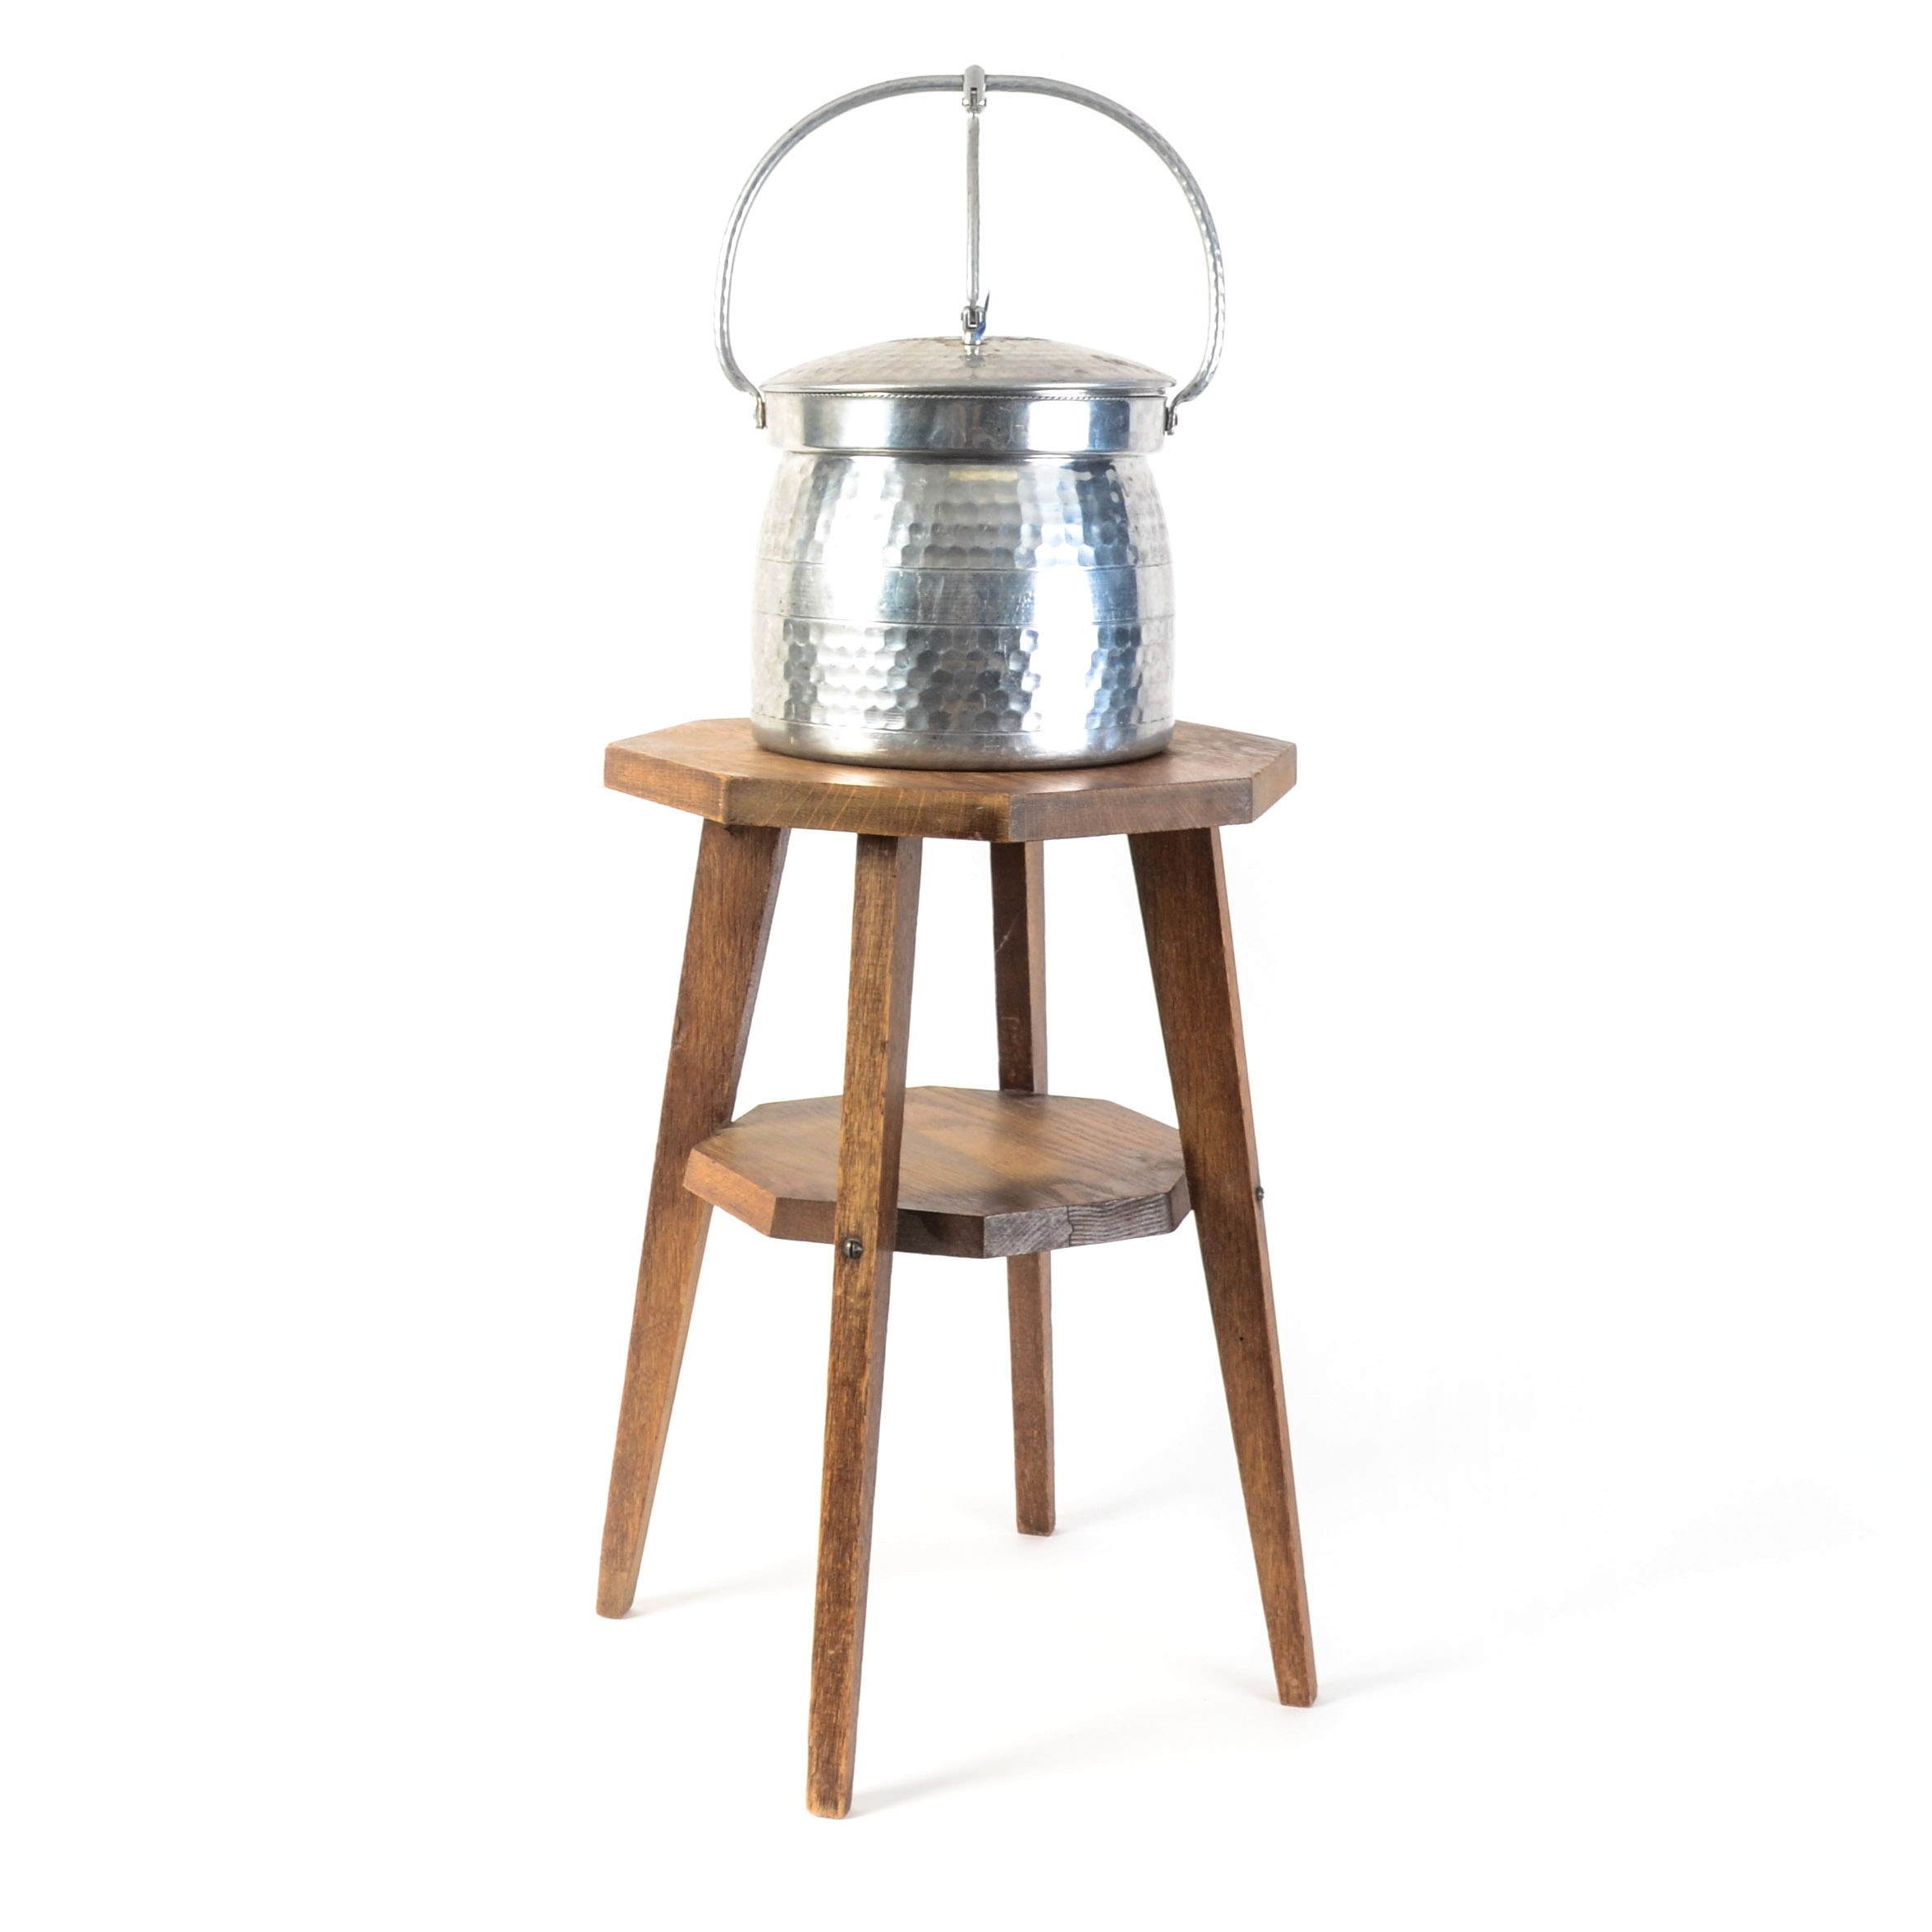 Cromwell Aluminum Ice Bucket and Wooden Stool